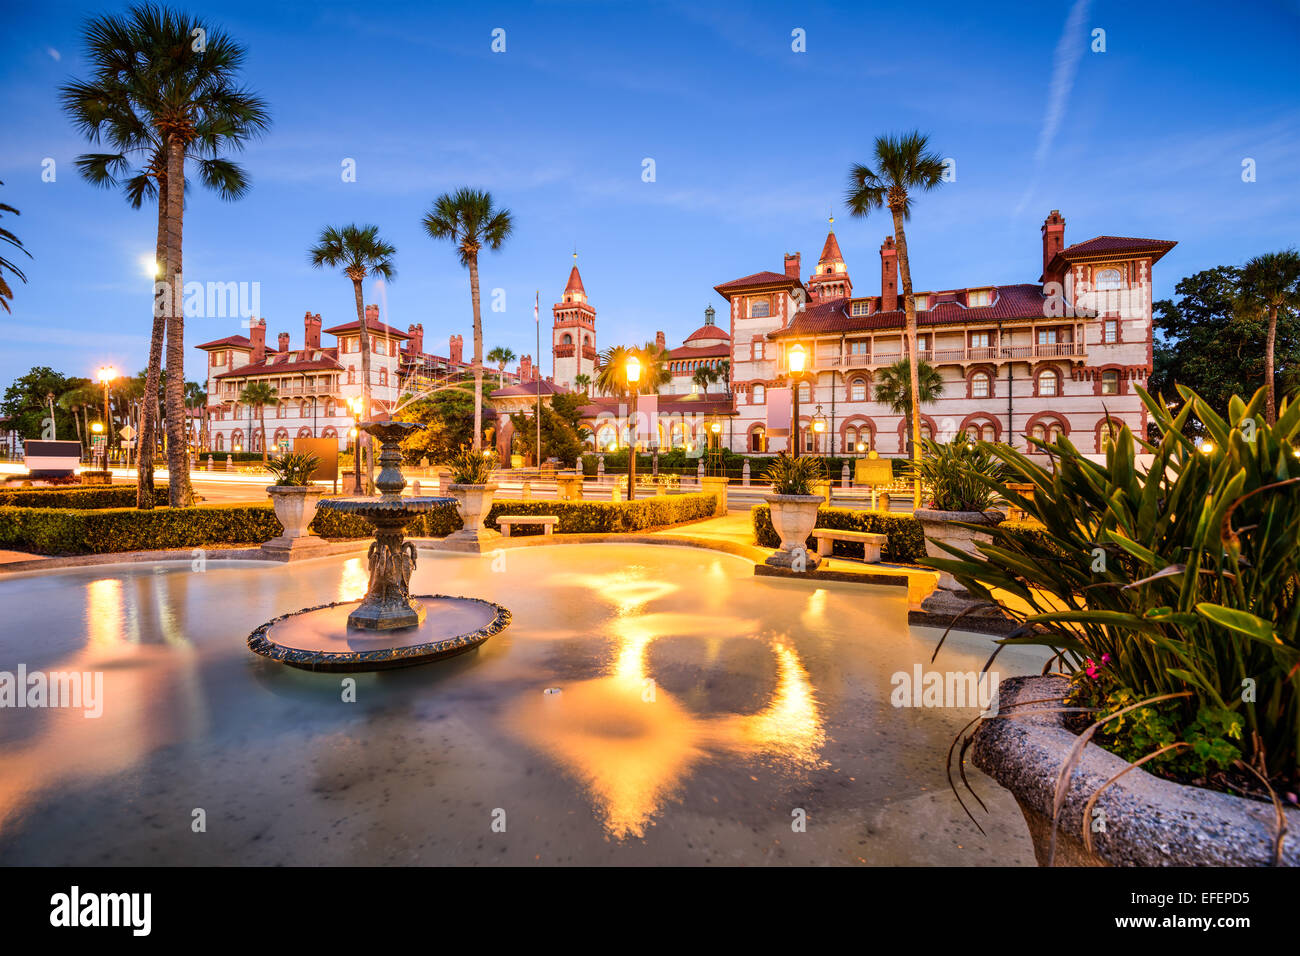 St. Augustine, Florida, USA townscape at Alcazar Courtyard. - Stock Image